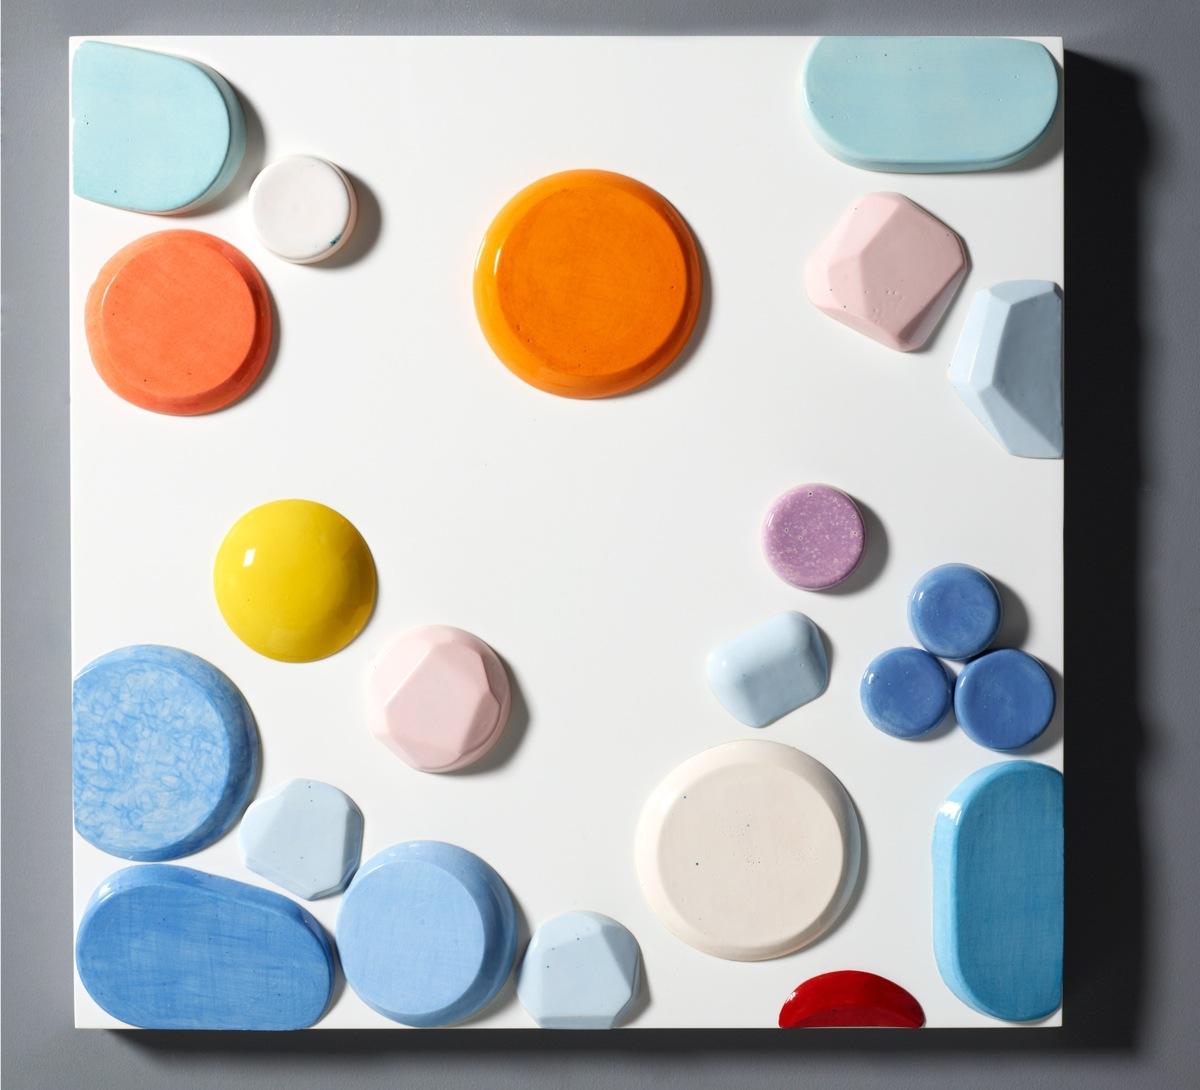 """Candy Series #8 - 2012 – High Fired Ceramics on Automotive Finished Panel – 24 x 24 <a href=""""mailto:judbergeron@mac.com?subject=Inquire: Candy Series #8 - 2012"""">Inquire</a>"""